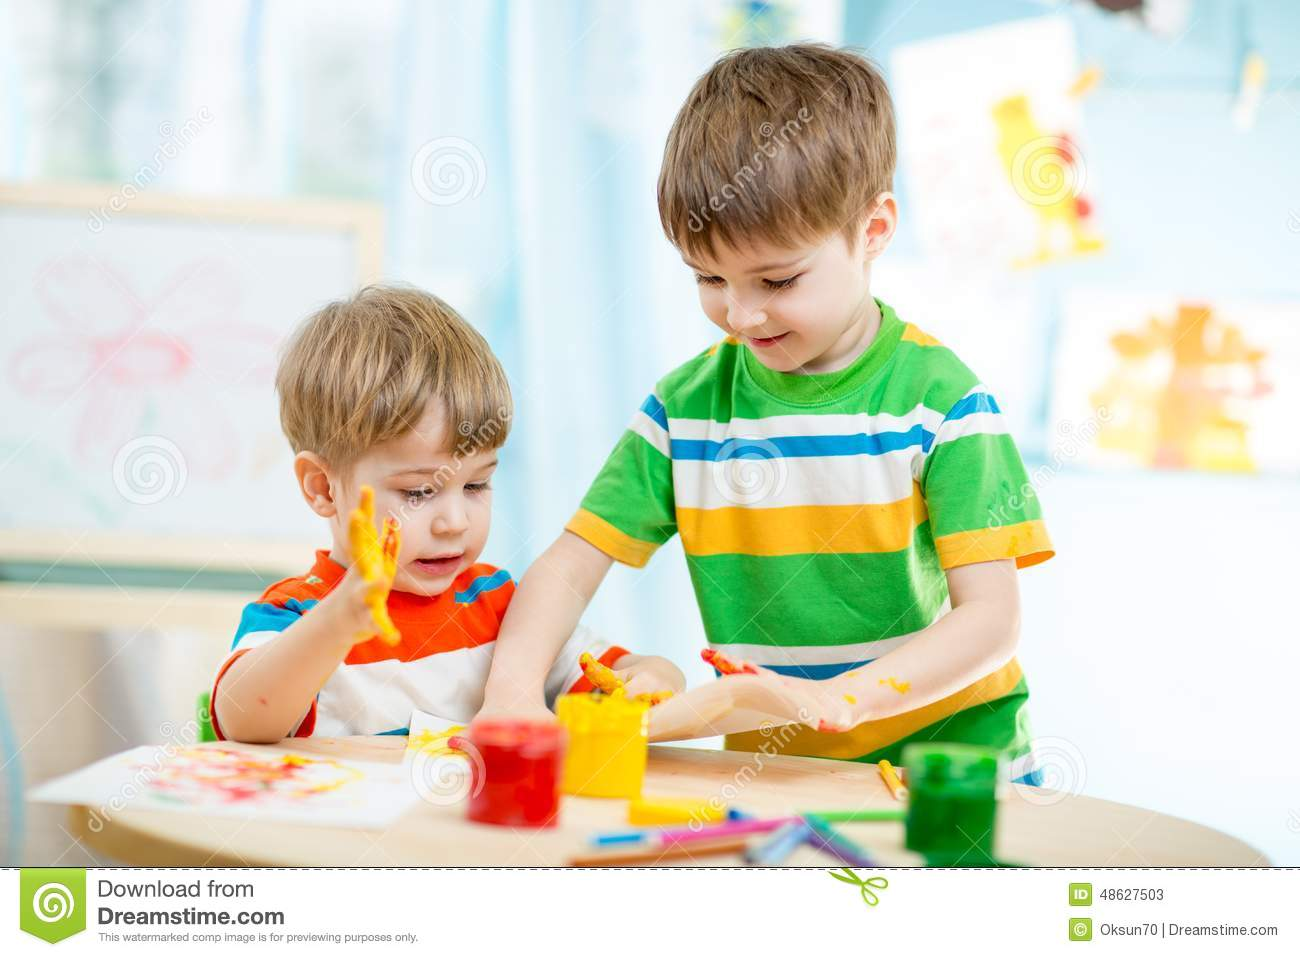 smiling kids play paint home playing painting homeor kindergarten